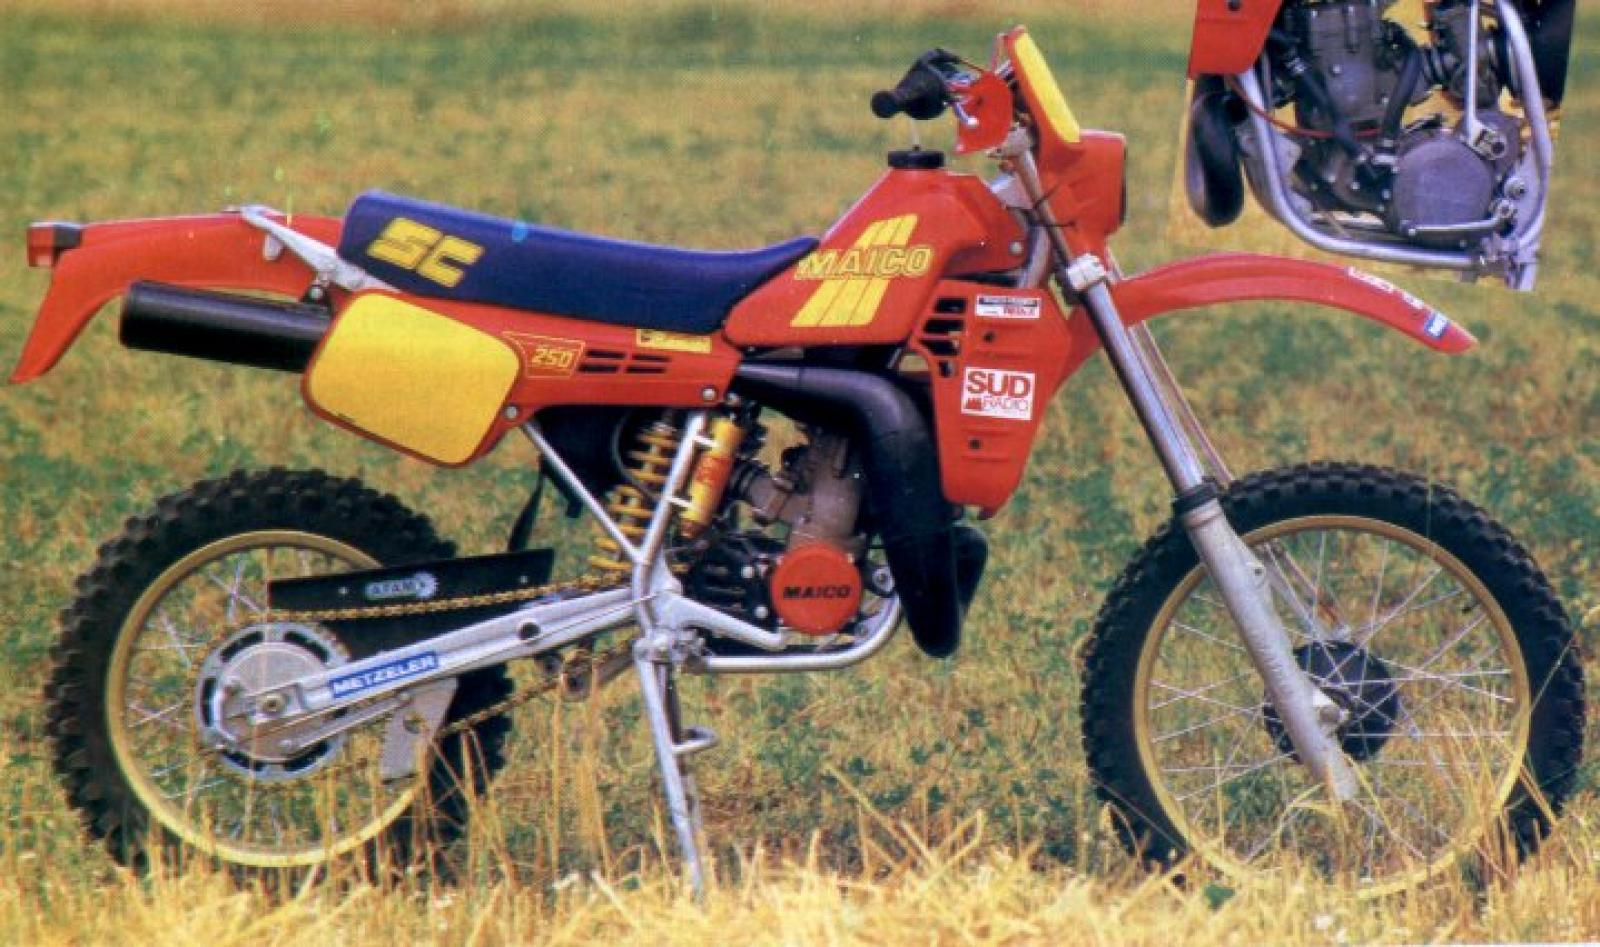 Maico GME 250 1984 images #102386